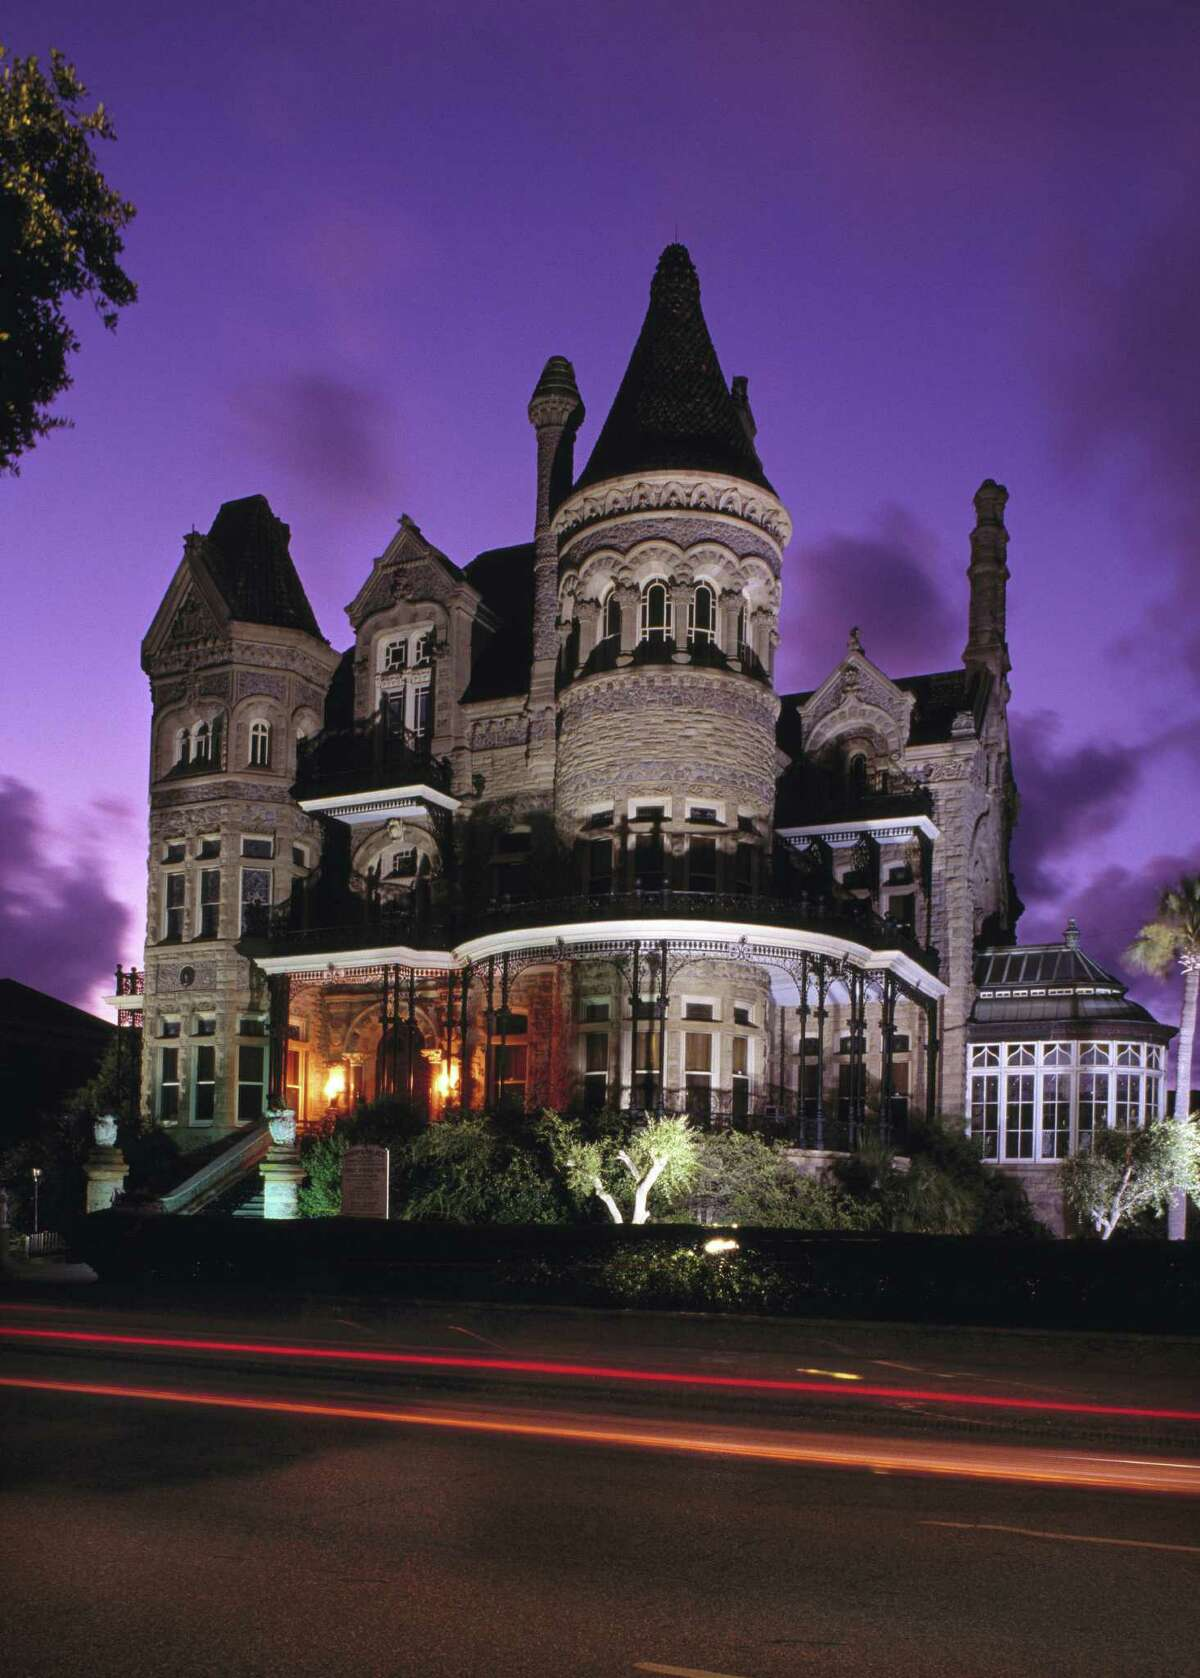 The Bishop's Palace in Galveston, built in the 19th century, is known as one of the finest examples of Victorian opulence in America.